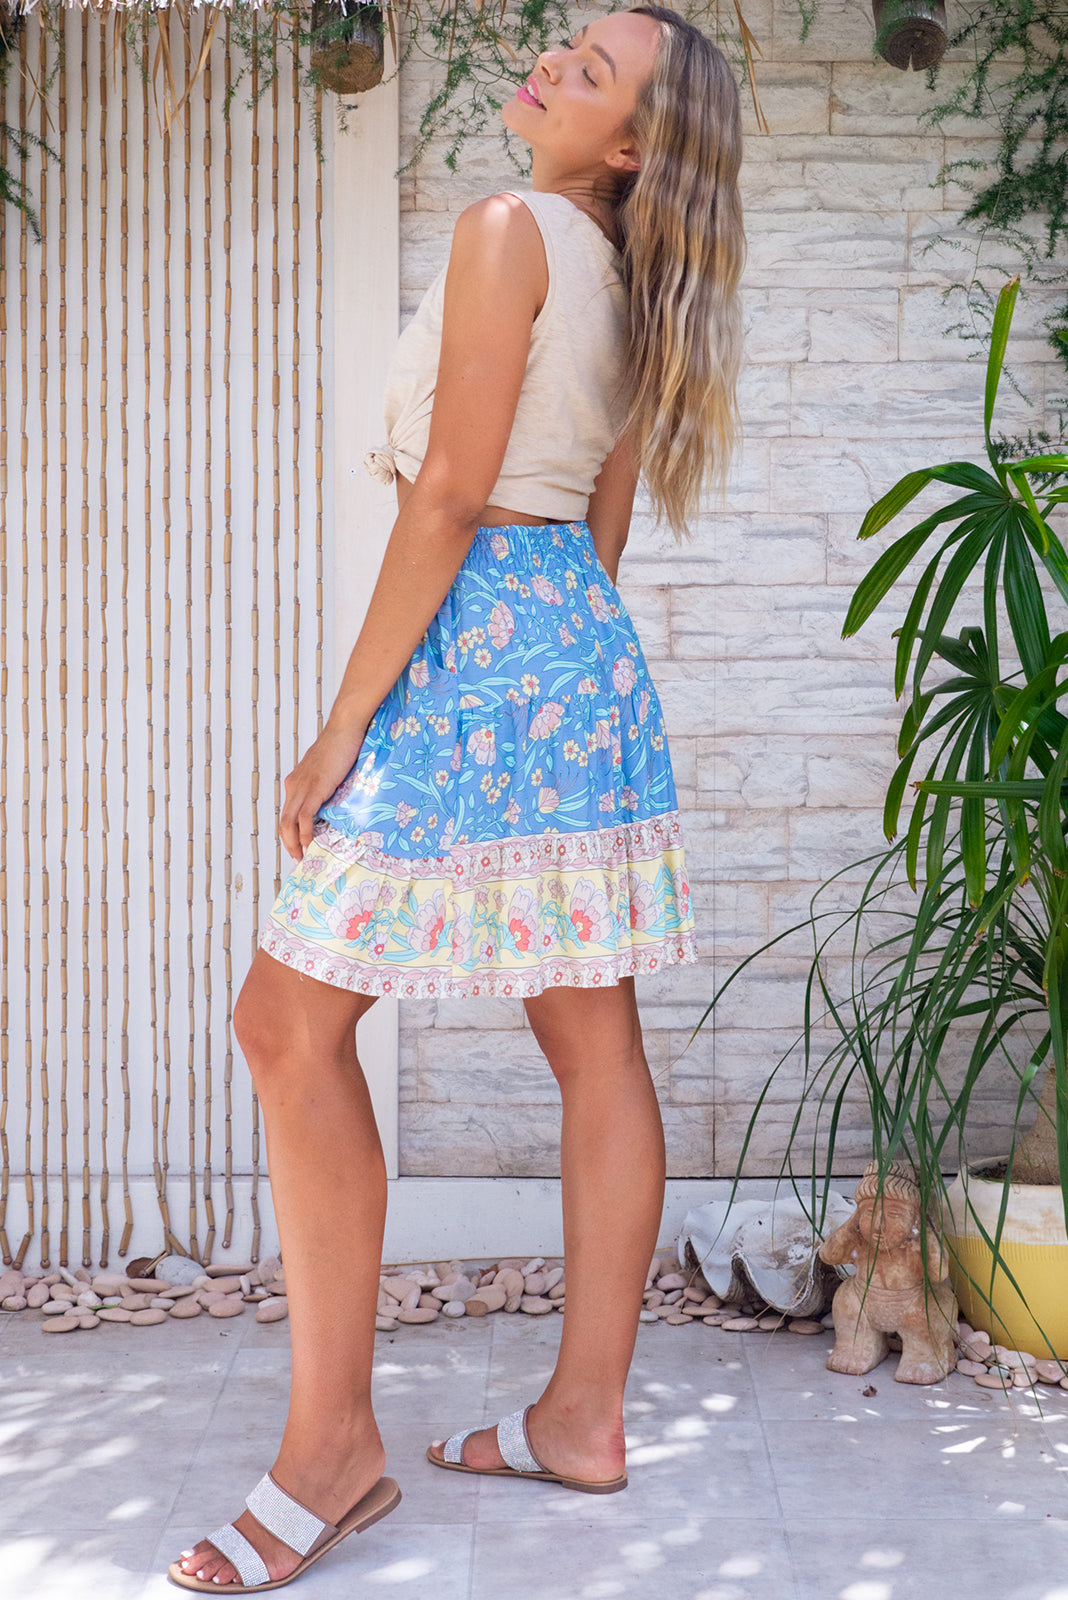 The Sea Coast Mini Skirt Cornflower Blue is comfortable pull-on style featuring elasticated back waistband, tiered for flirty fullness, side pockets and 100% viscose in blue base with border feature.